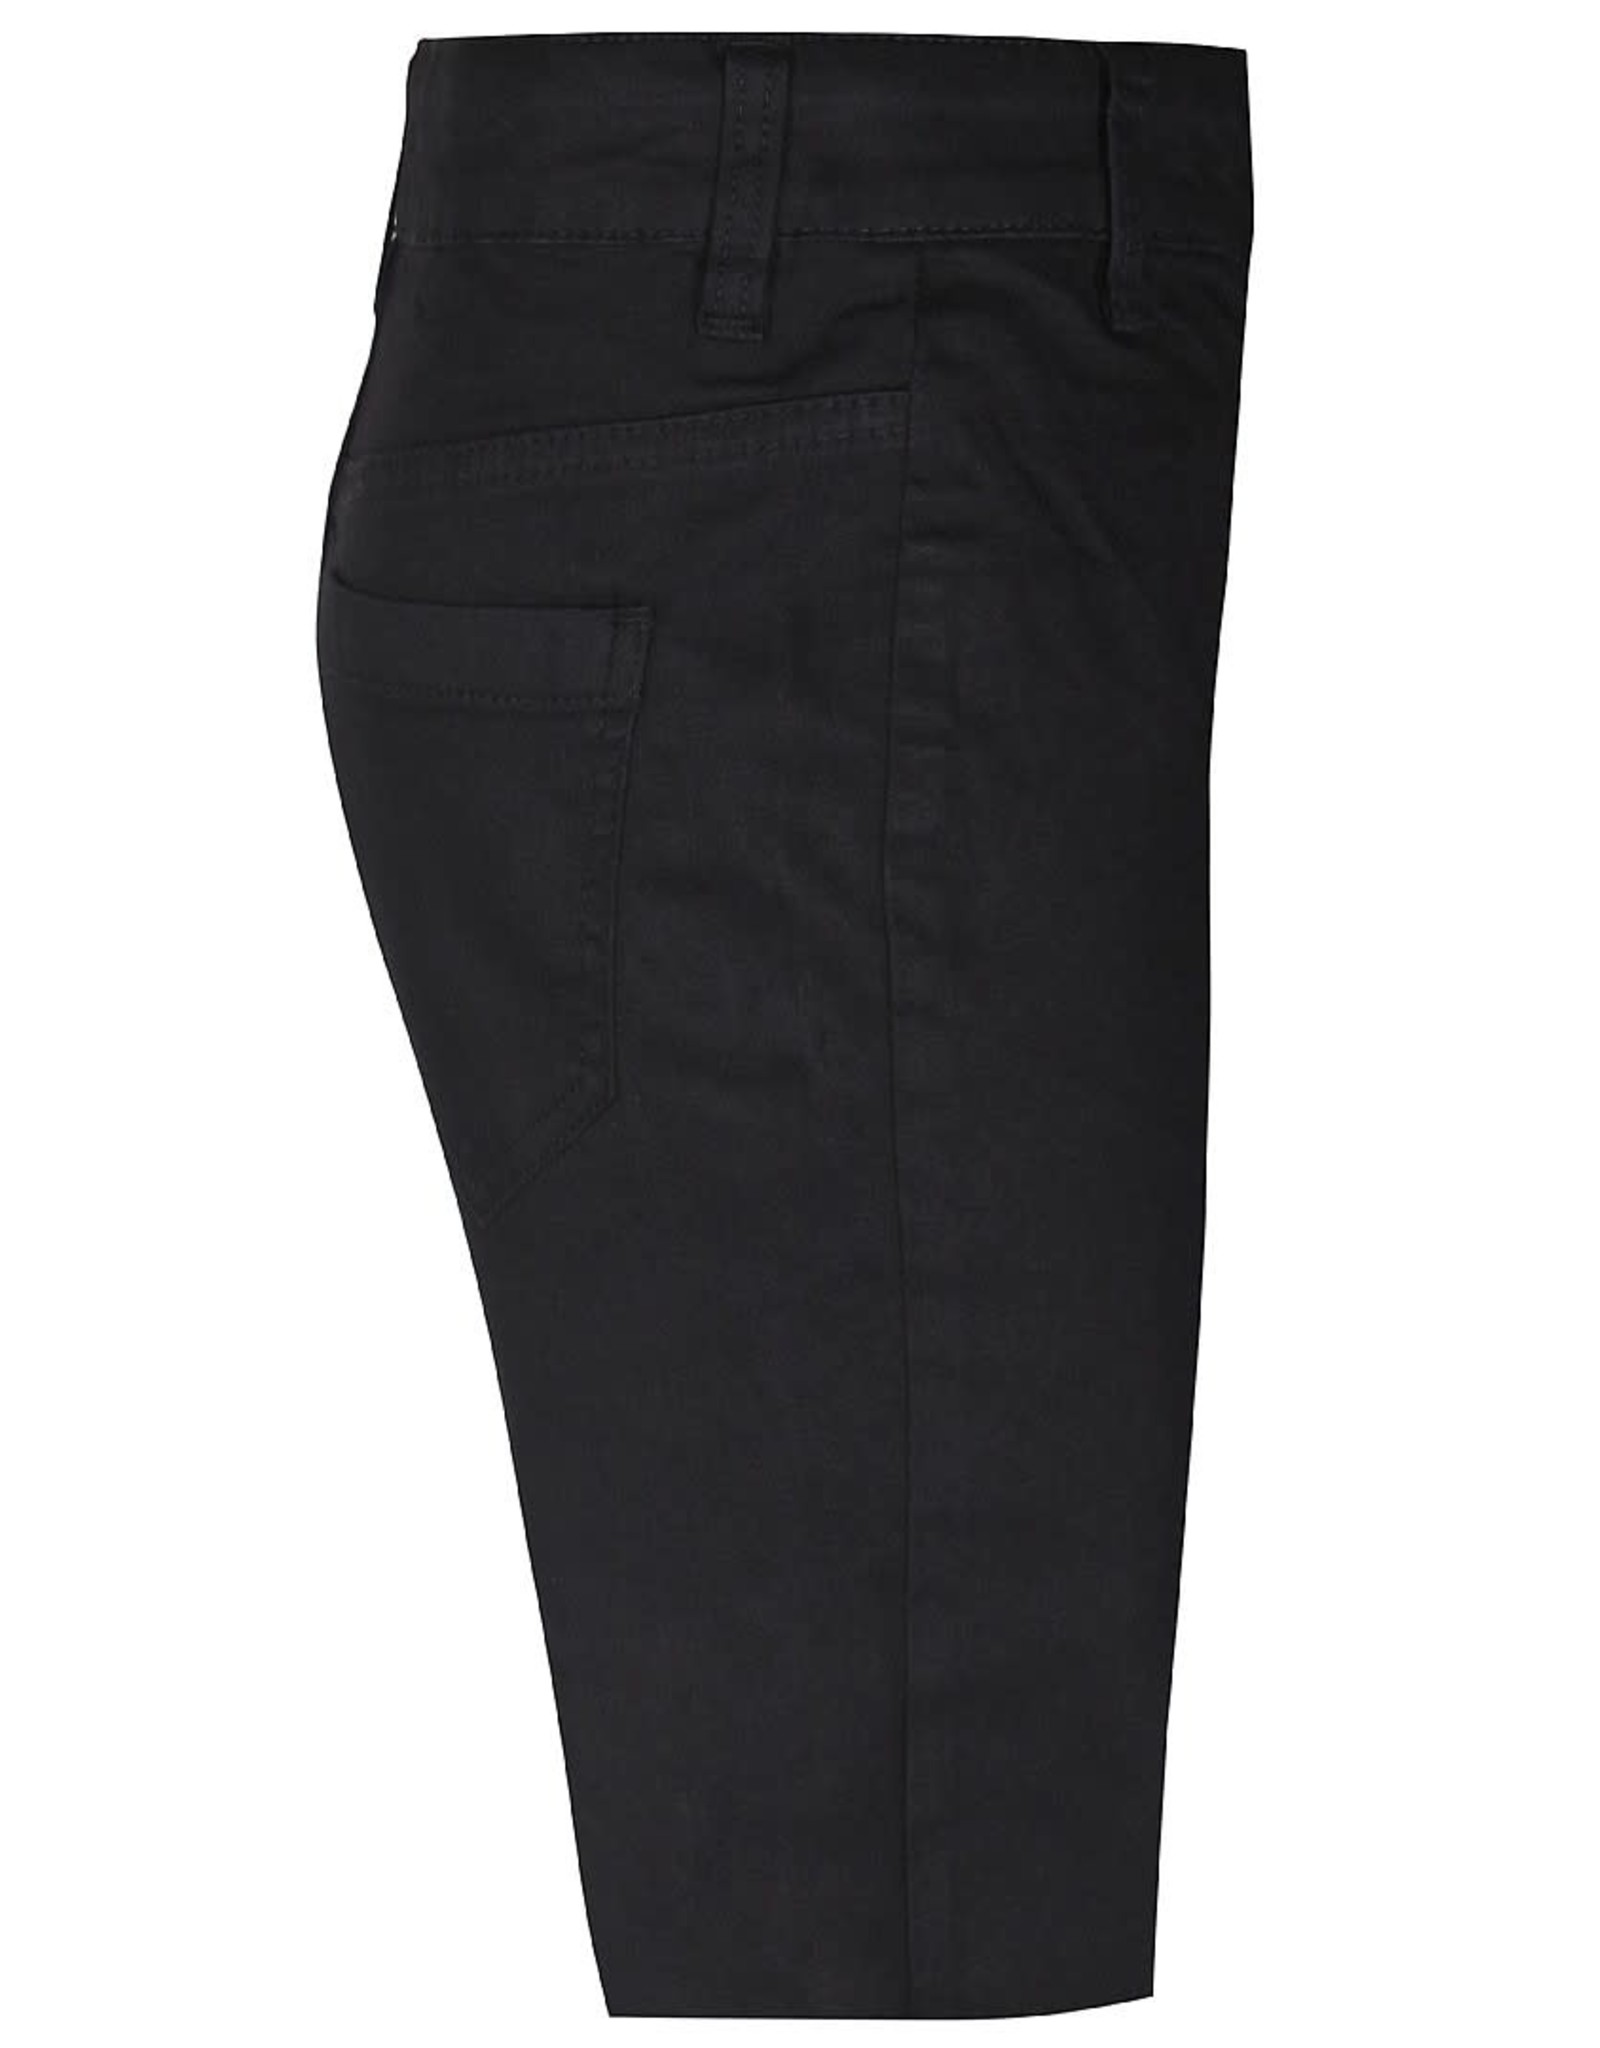 D-Xel D-Xel meiden flaired pants Lillith Black